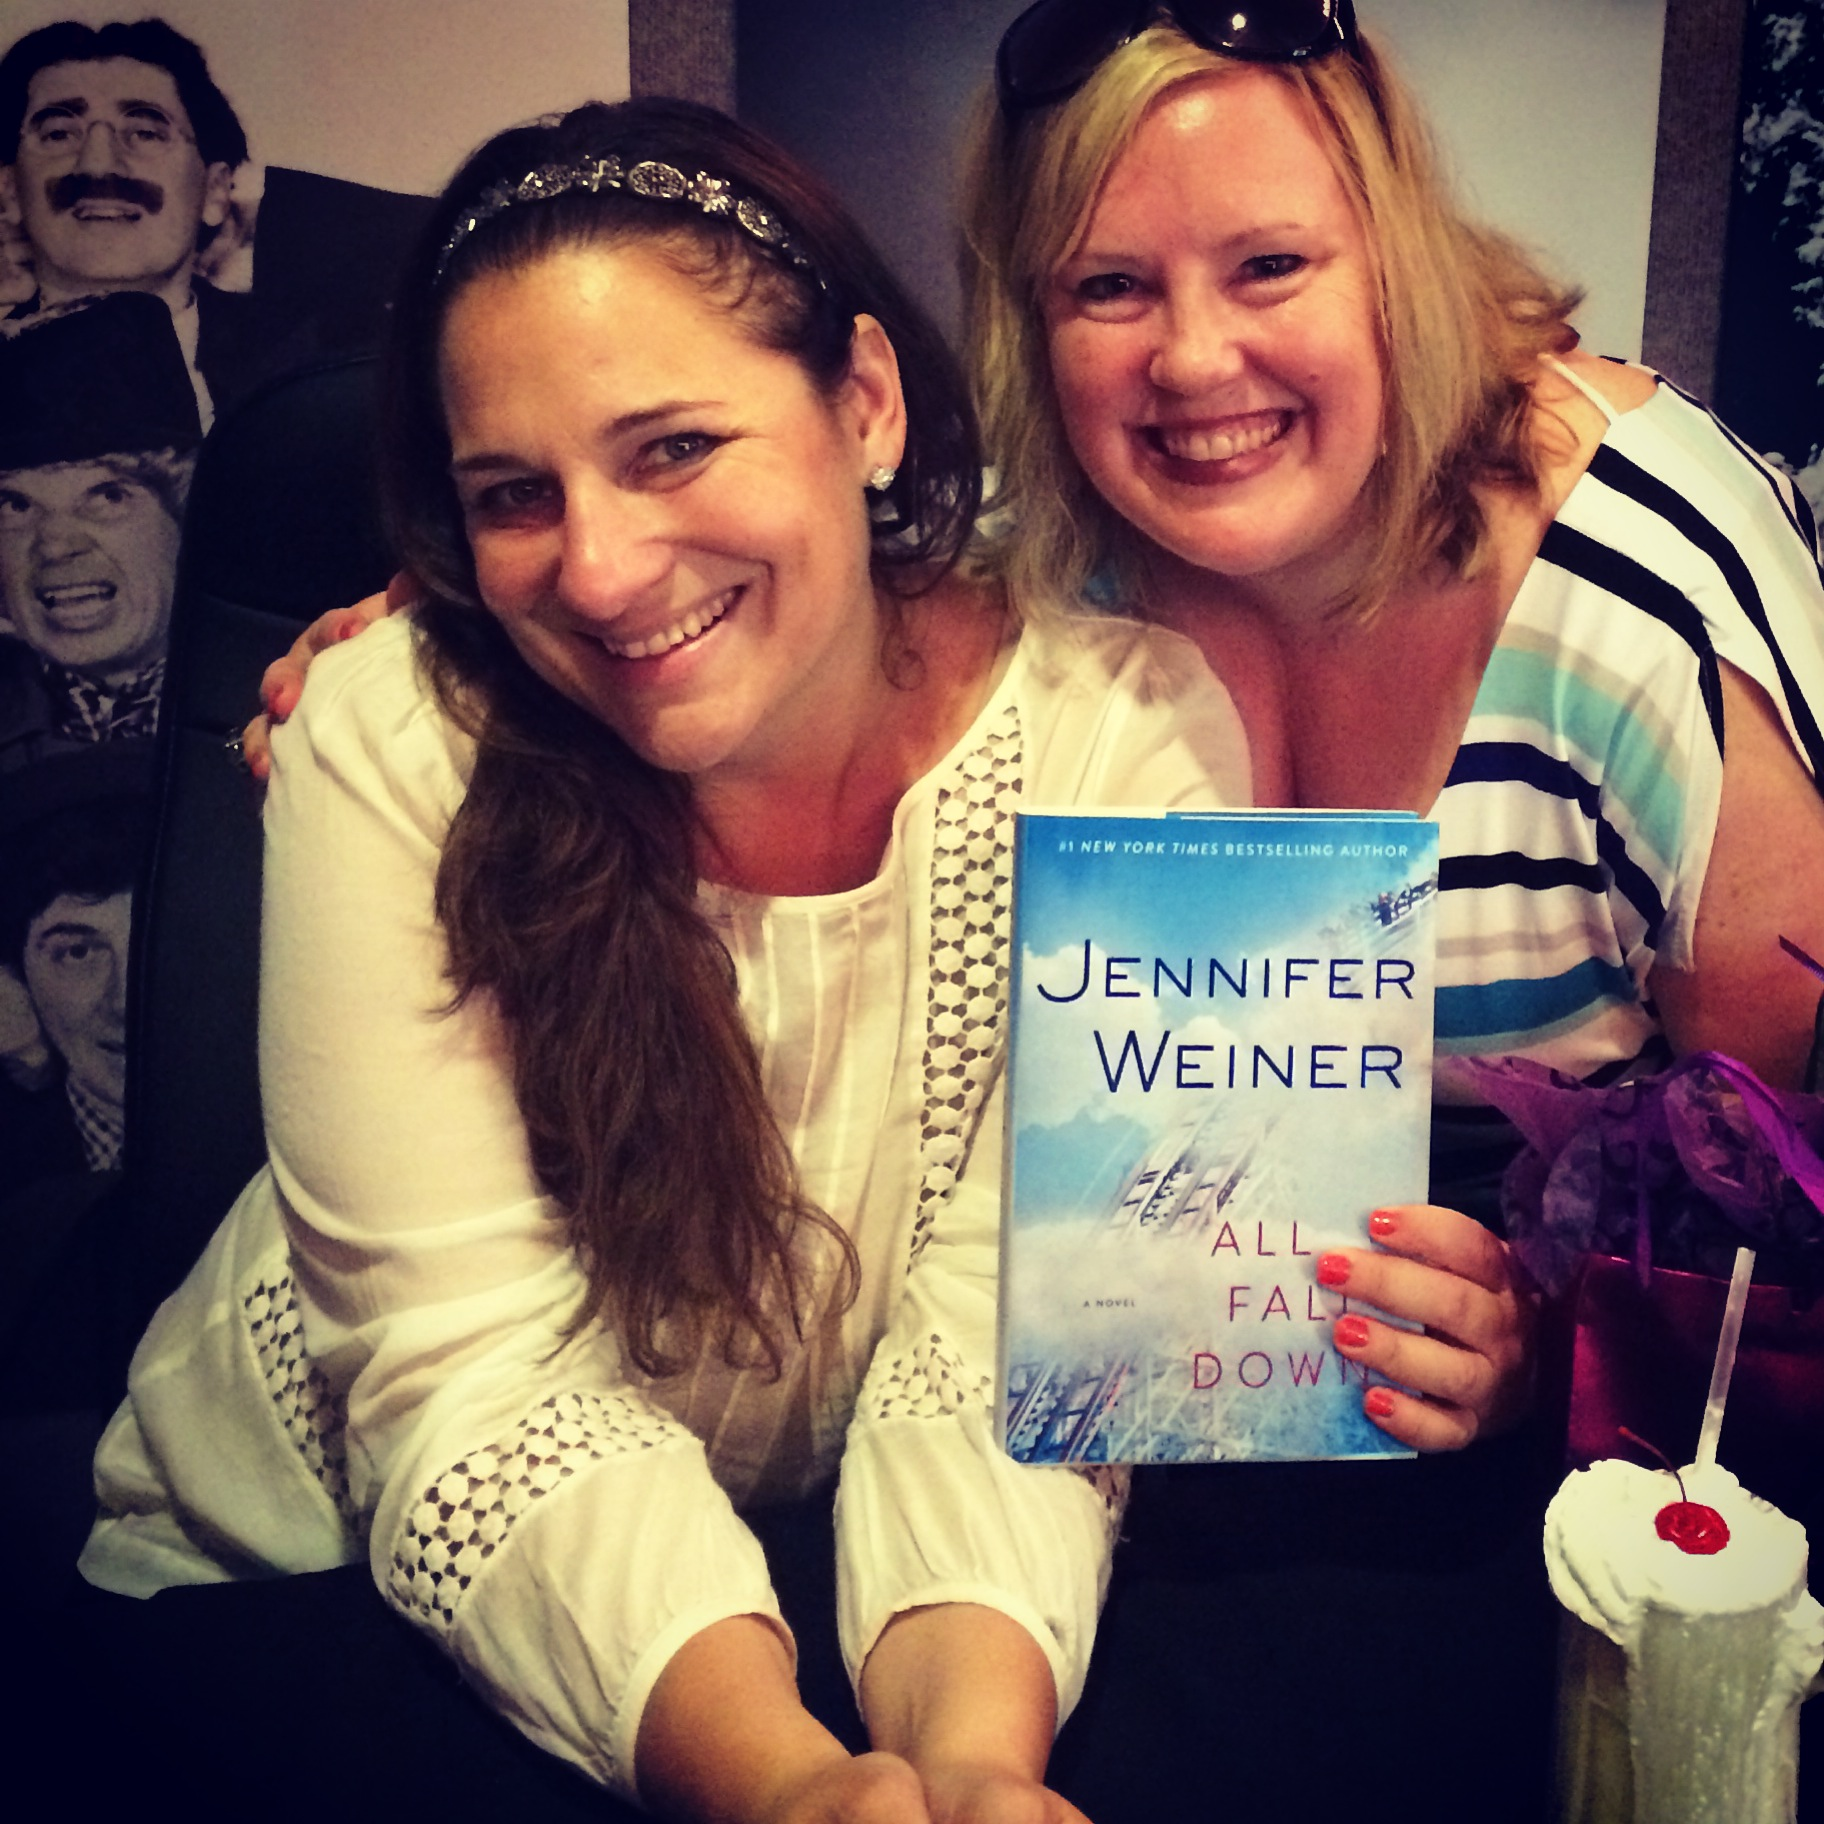 d.d. marx at Jennifer Weiner Book Signing